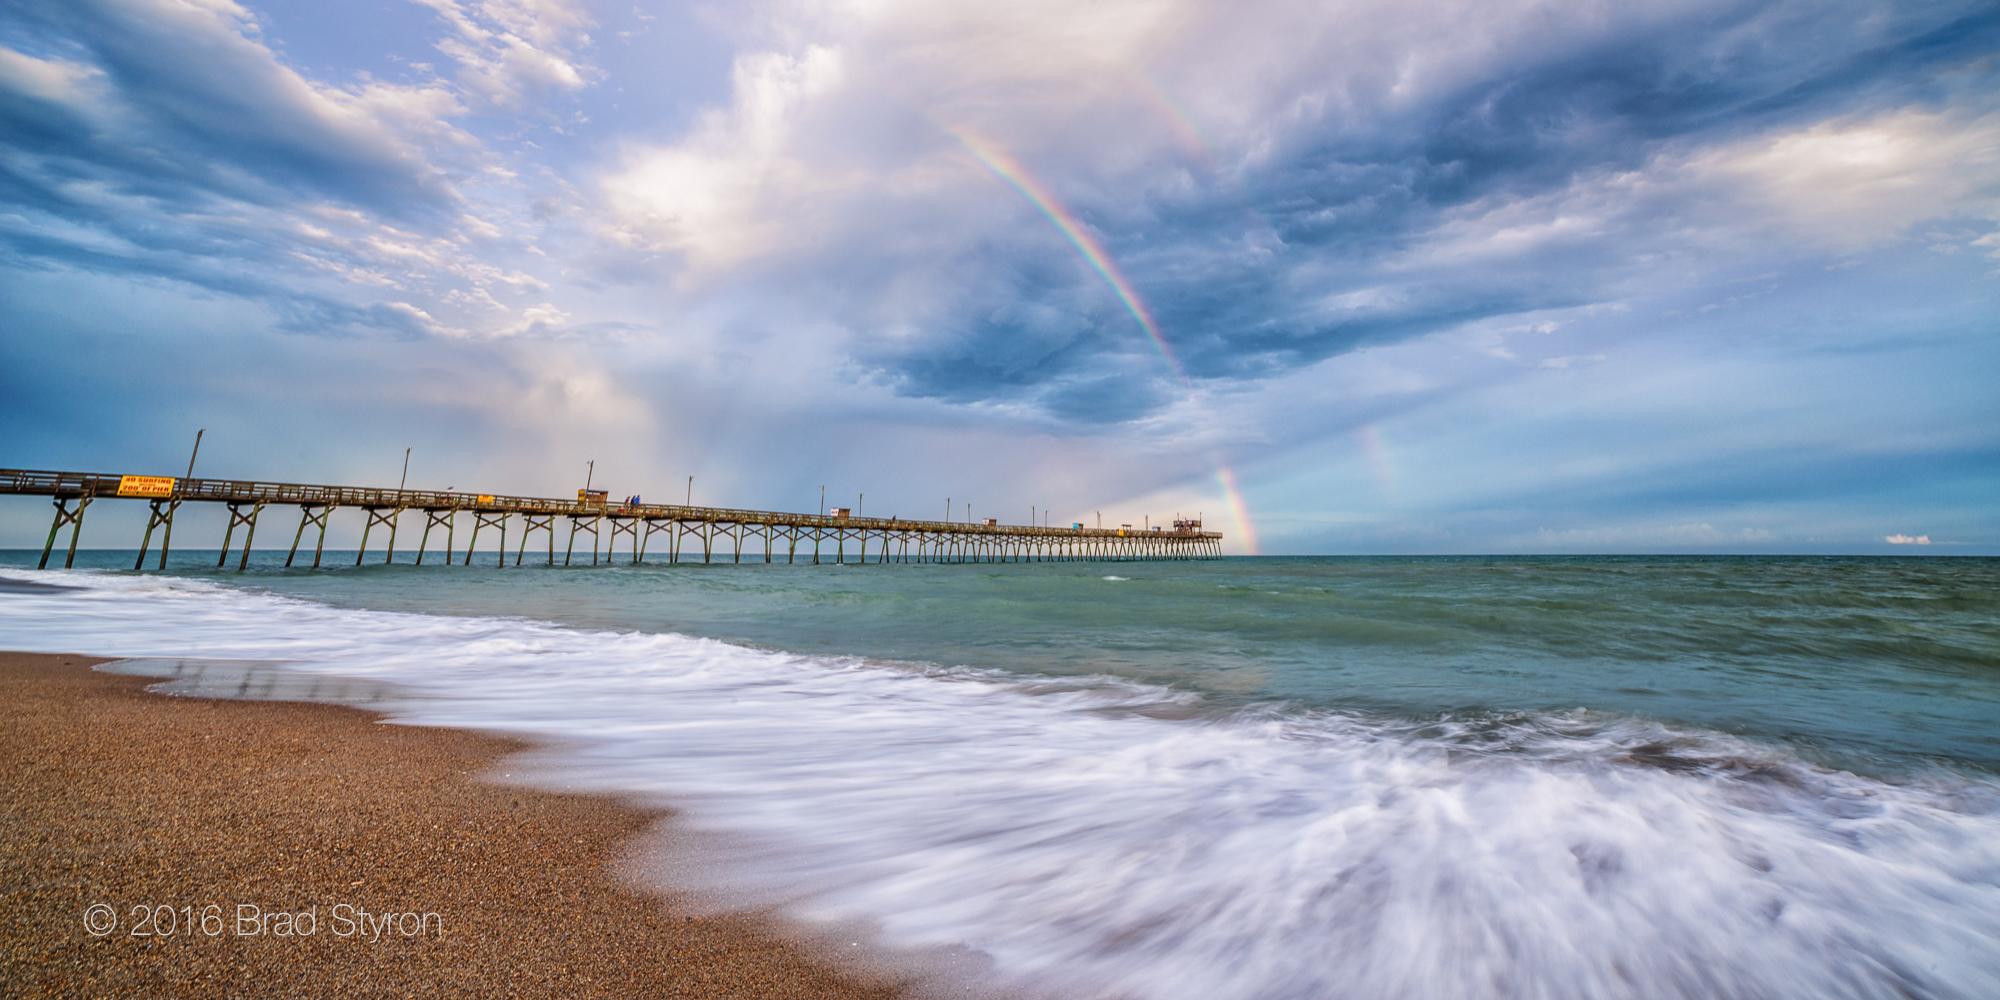 <div class='title'>           rainbow-over-bogue-pier-xurusq         </div>                 <div class='description'>           Rainbow over Bogue Inlet Pier         </div>